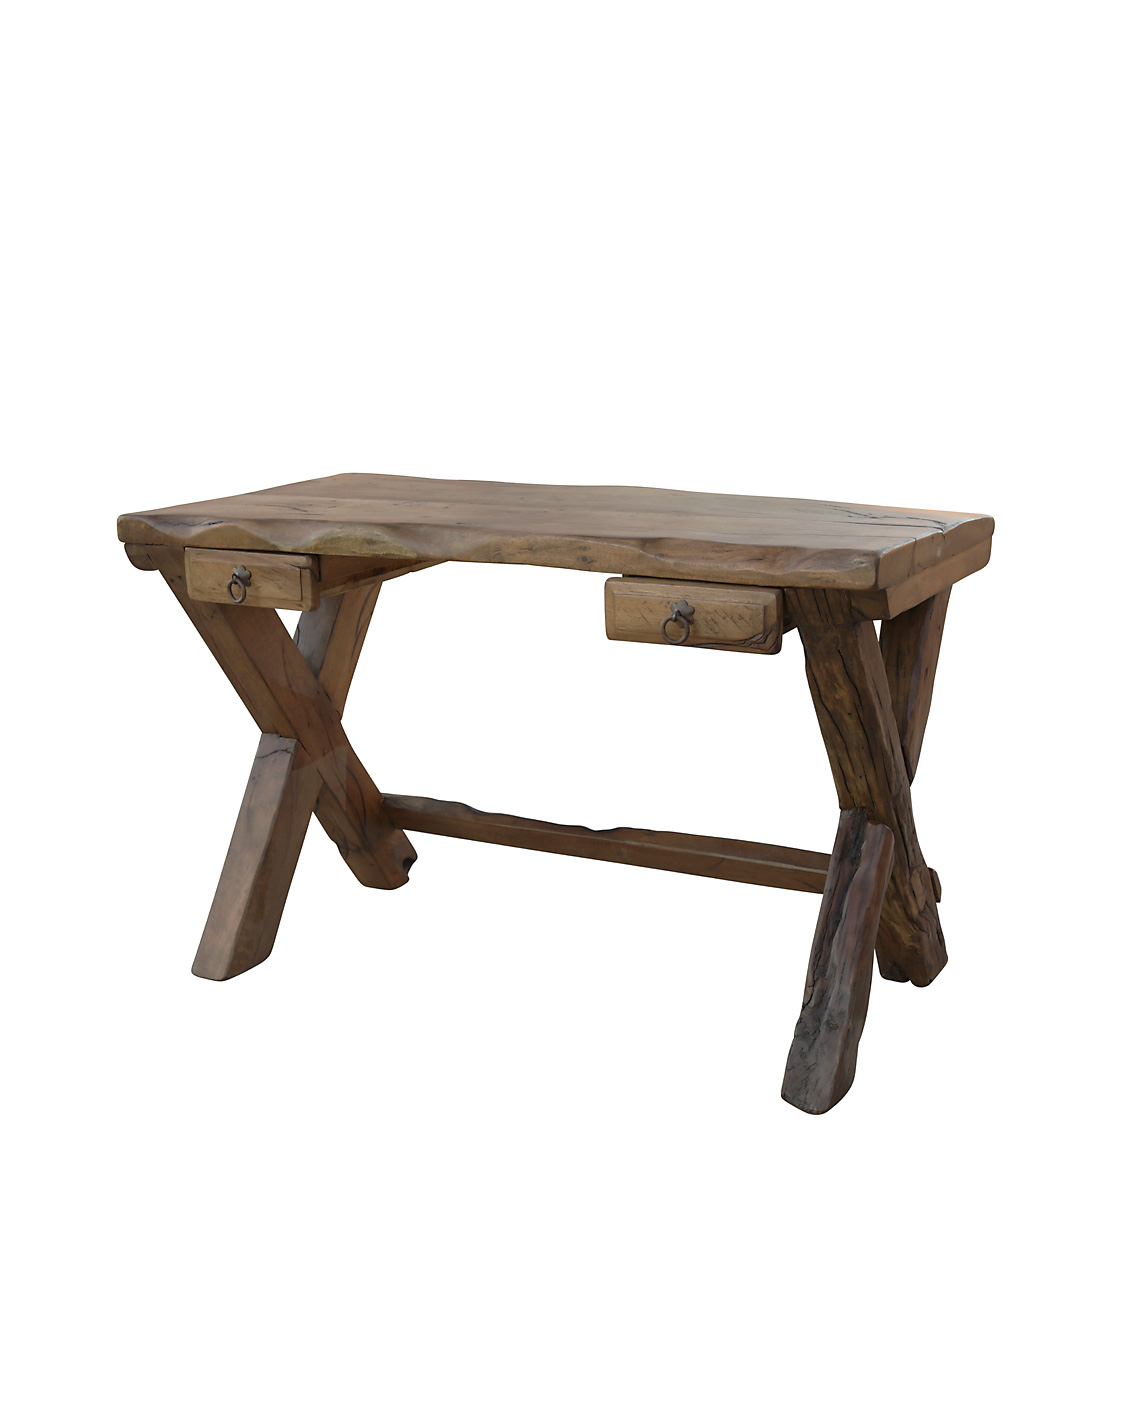 Harbow Live Edge Rustic Desk Luxury Rustic Furniture